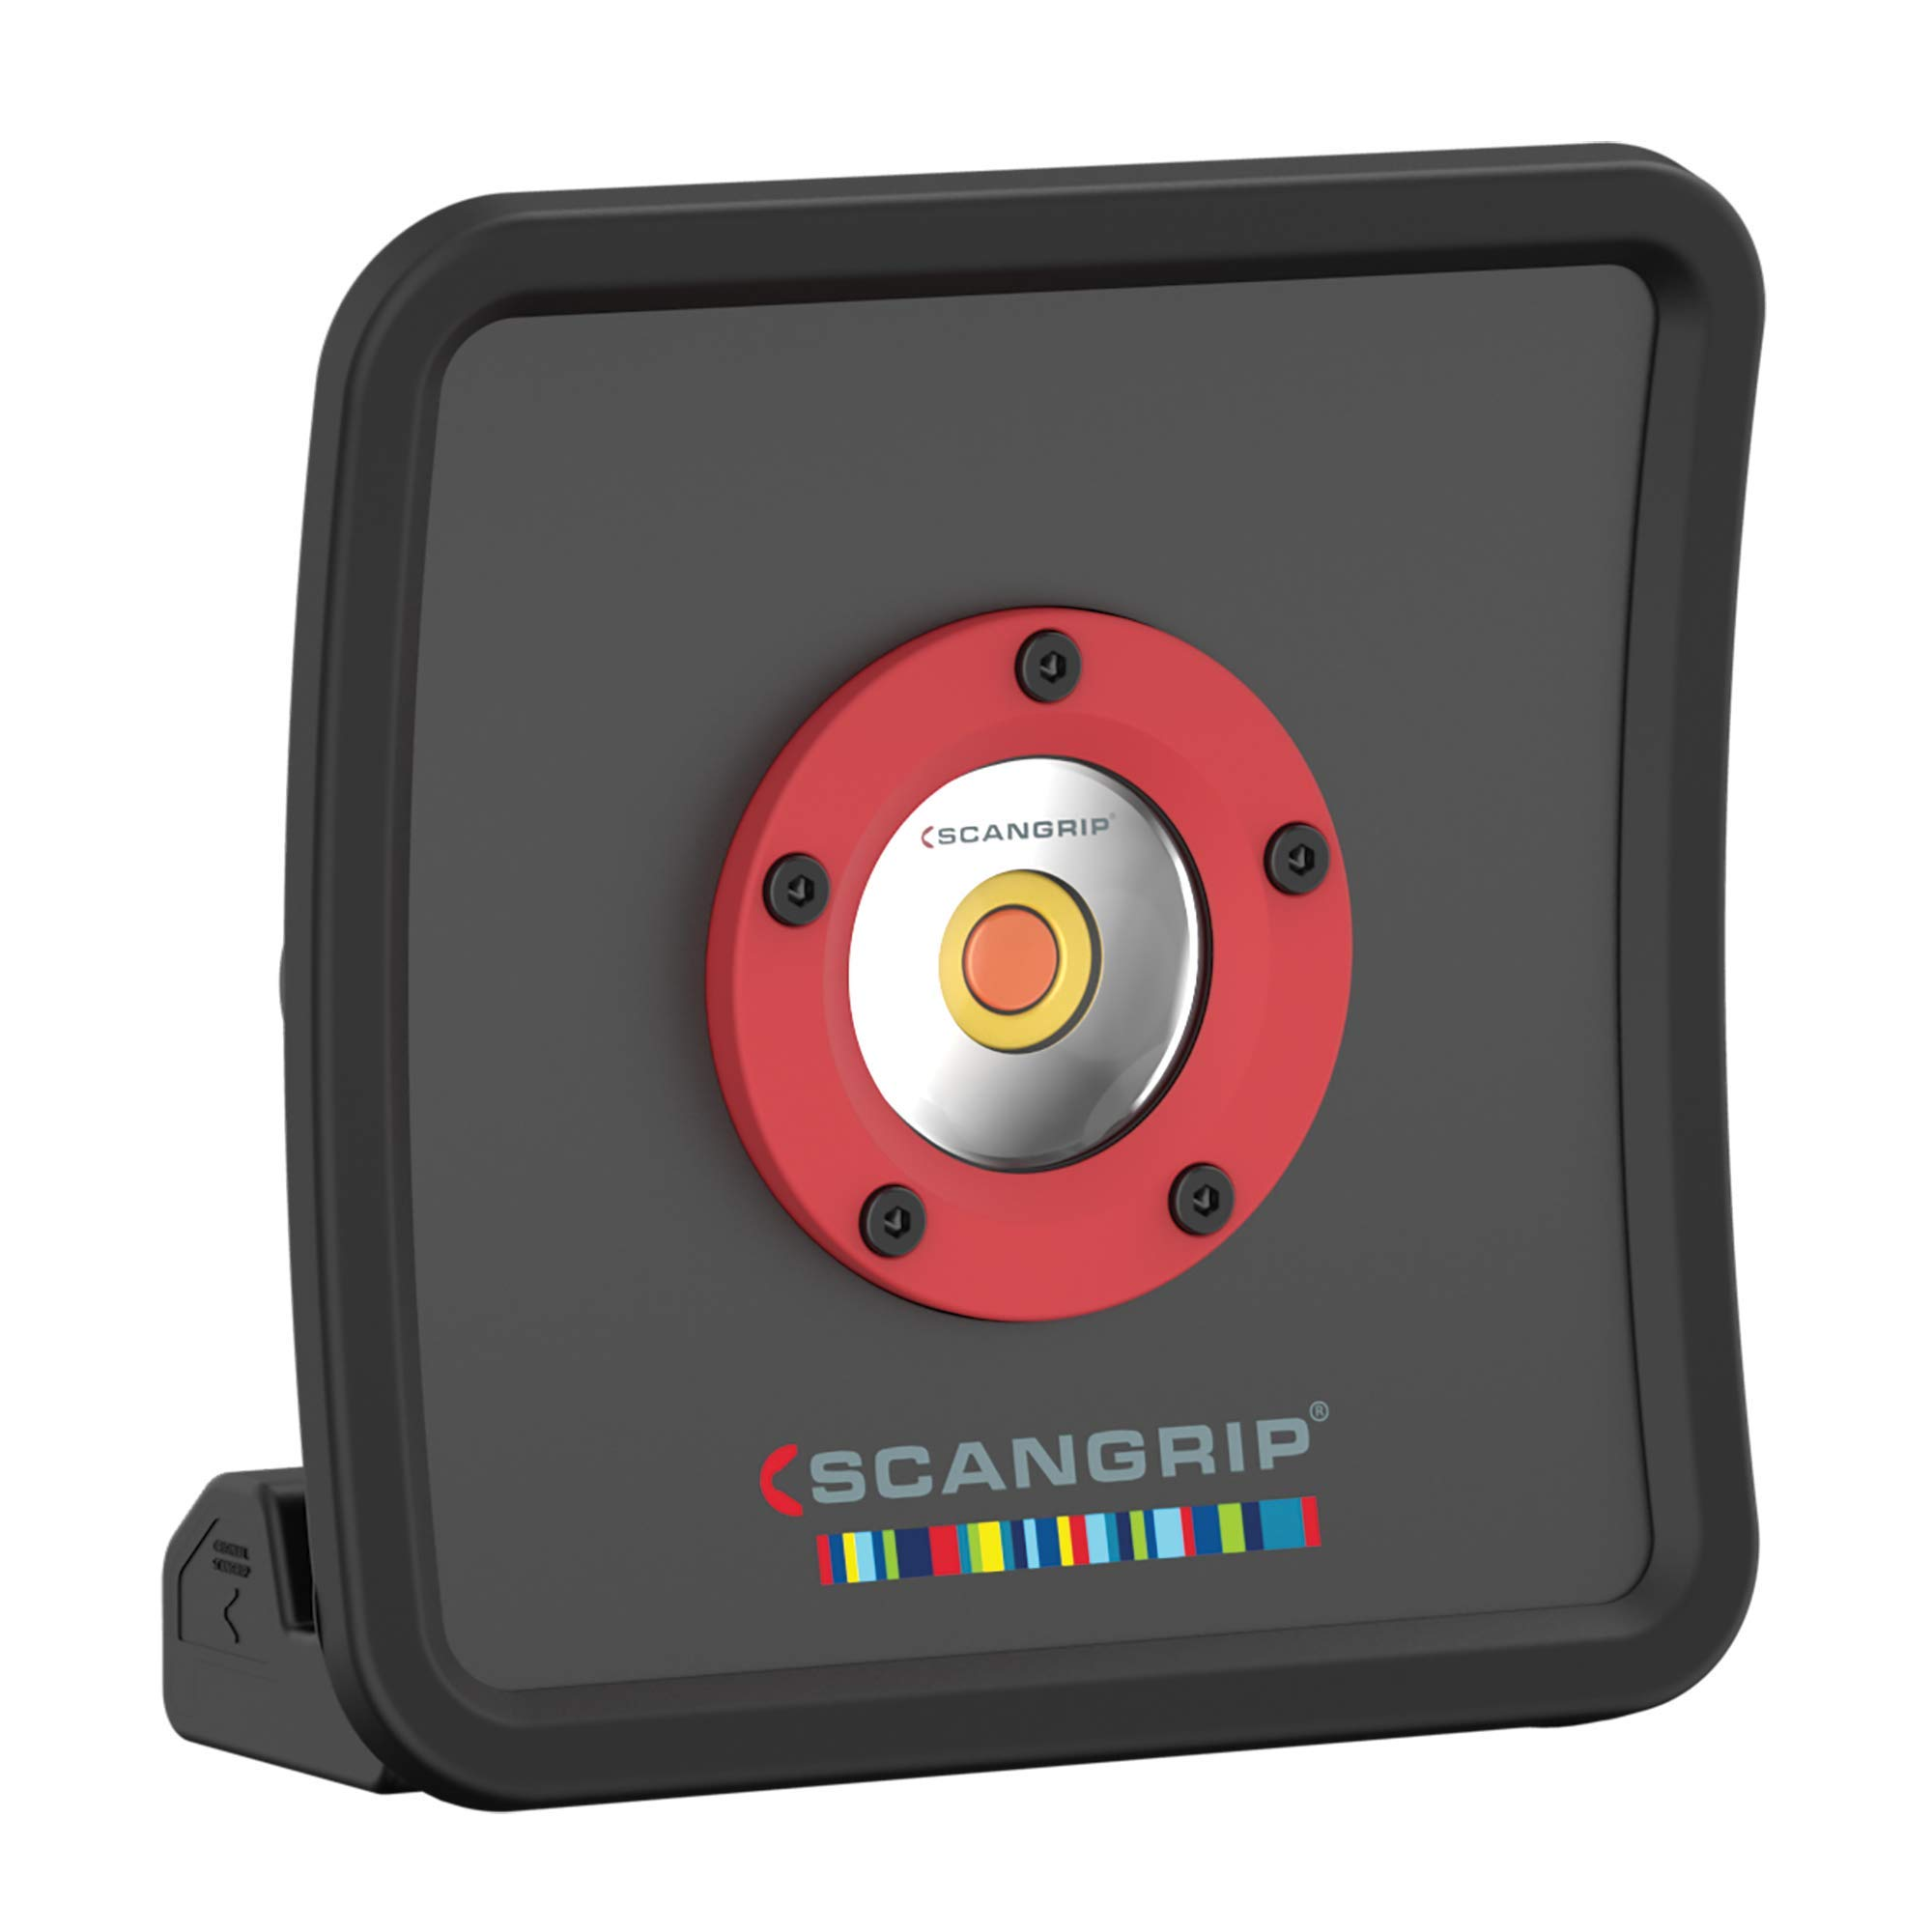 Scangrip MultiMatch R - Powerful and Handy Lighting Solution for Painting Industry, 1,200 Lumen LED Work Light